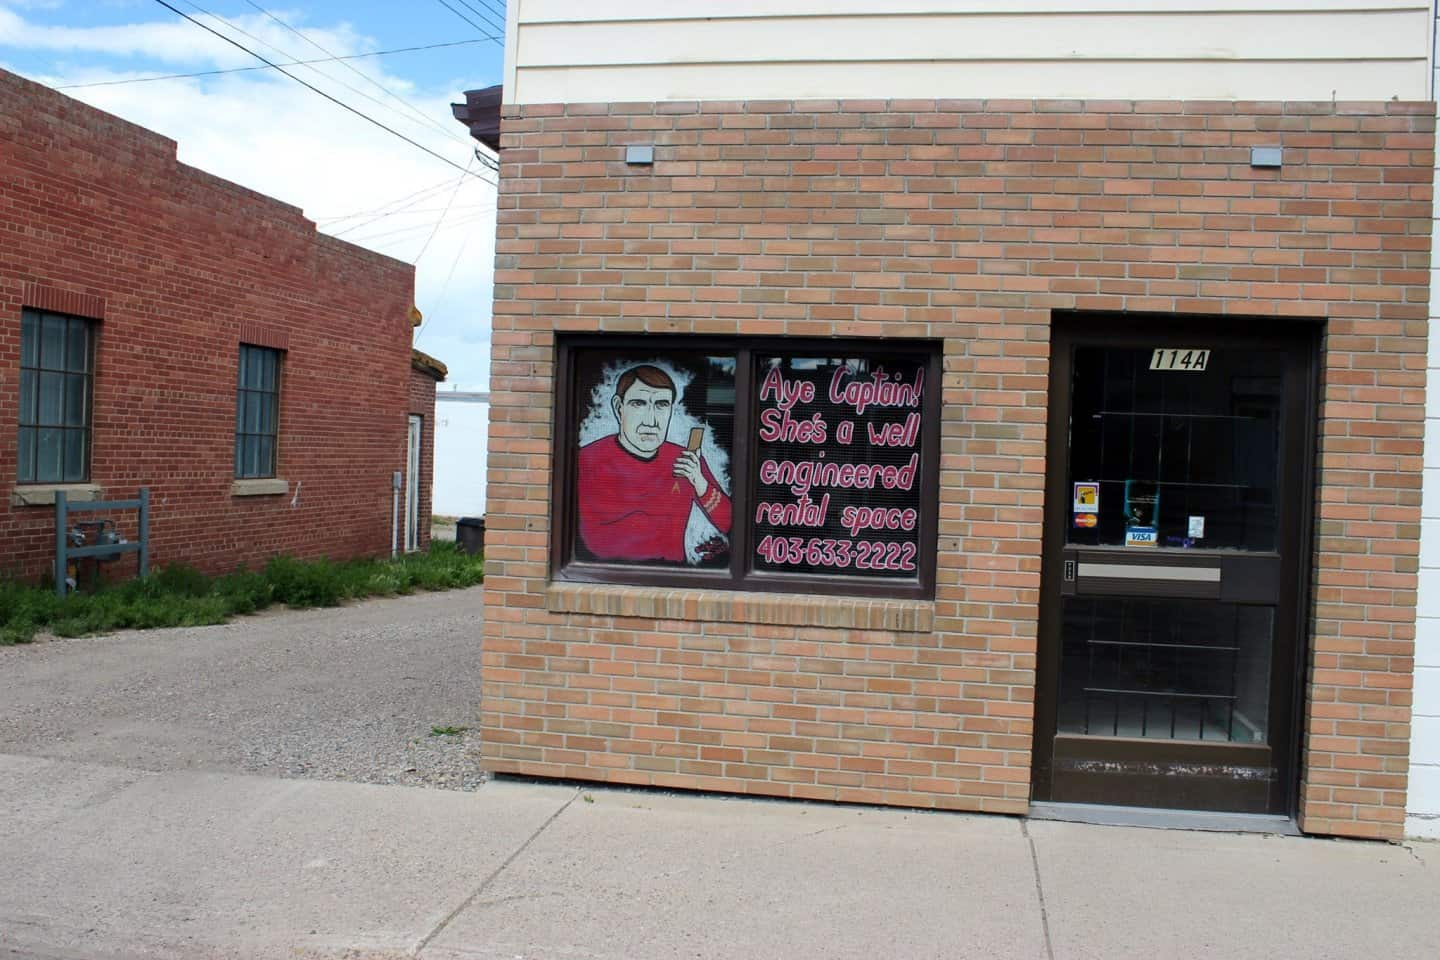 A brick building with a glass door on the right and a window on the left. The window has an art mural of a character from Star Trek - Scotty advertising that the window can be used as advertising space.